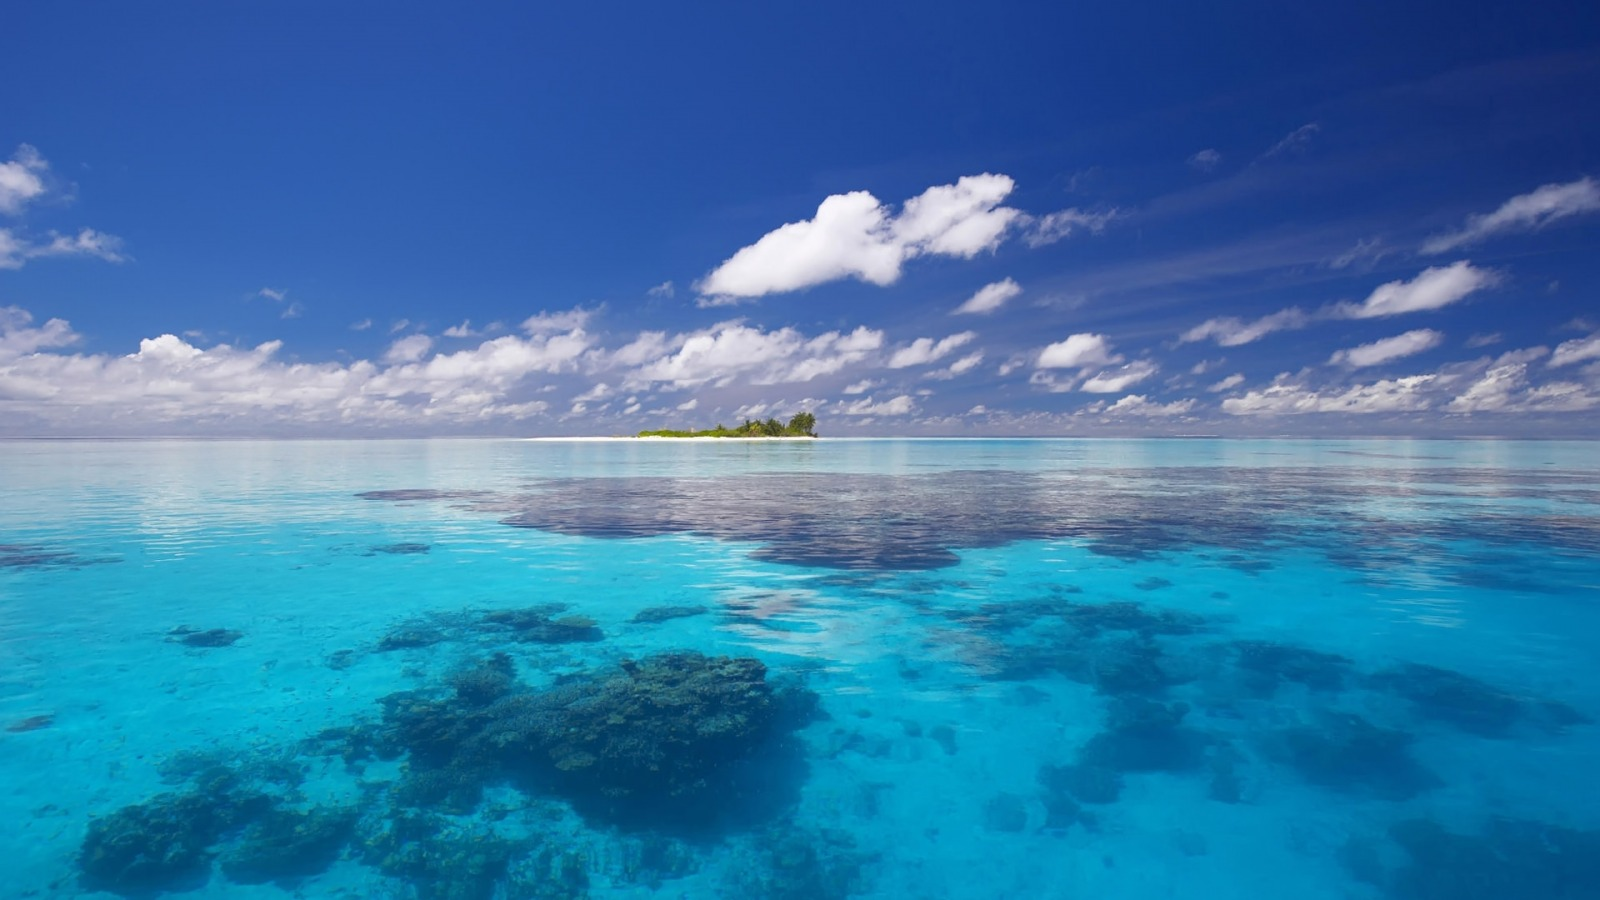 ocean nature oceans vast expanse natural beauty genesis amazing there seem while